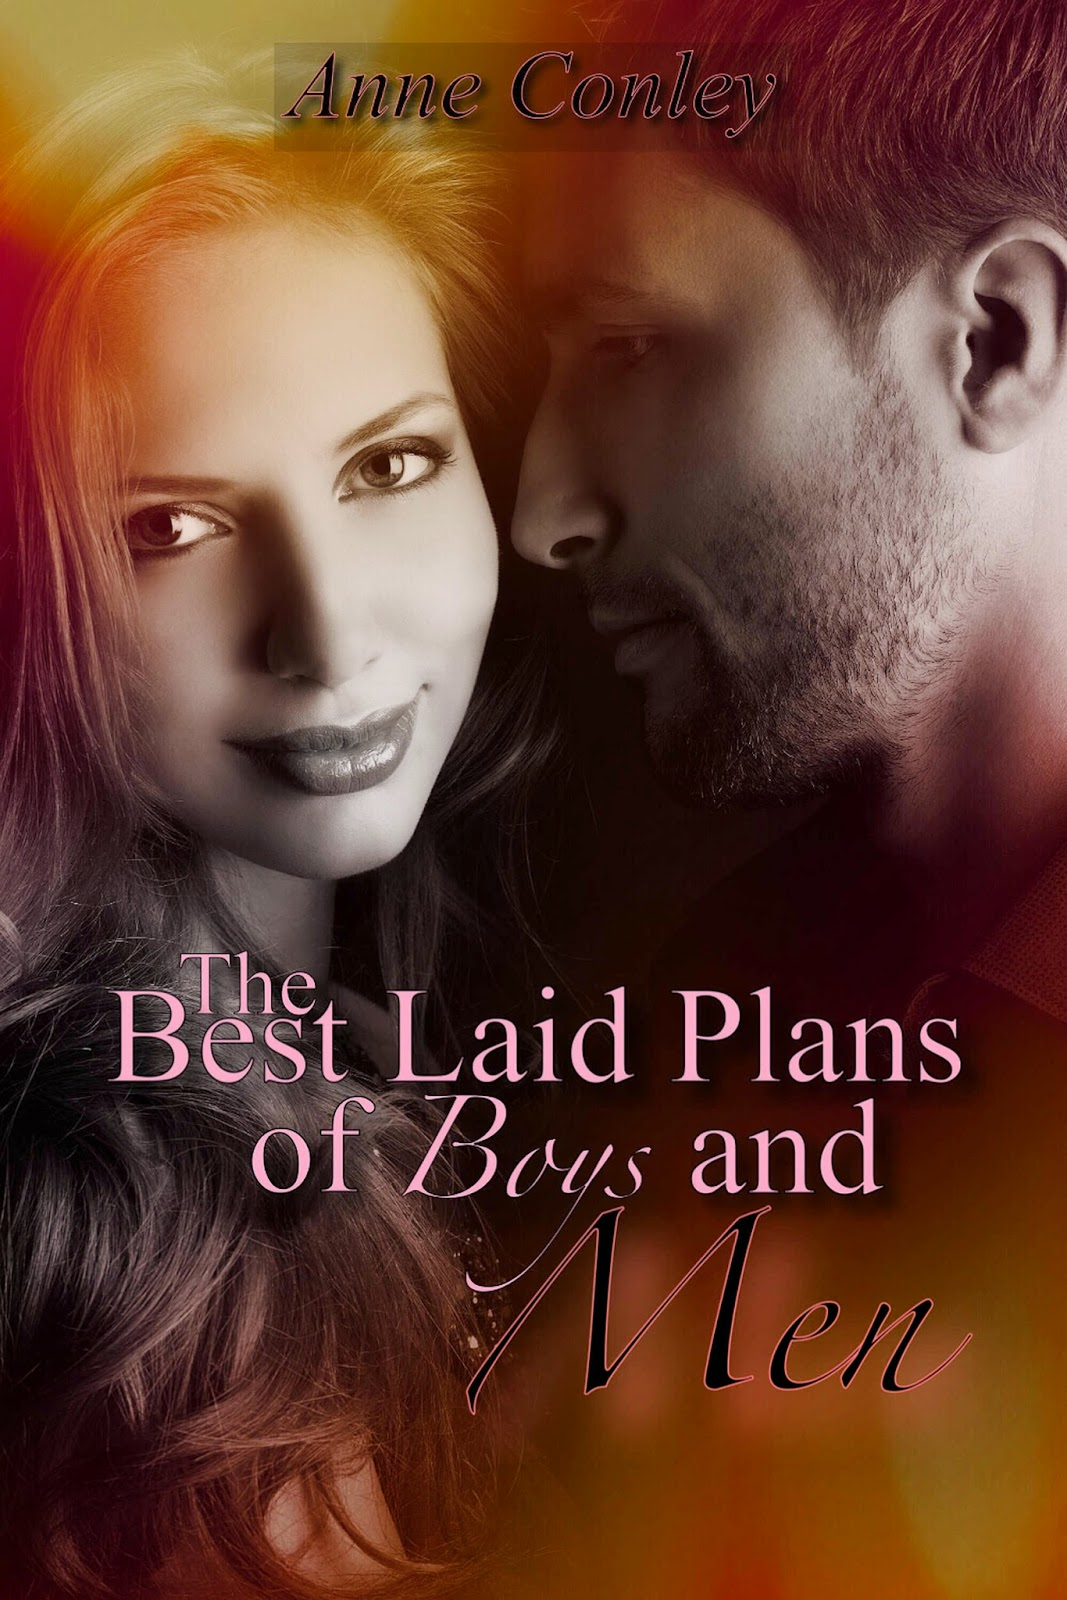 https://www.amazon.com/Best-Laid-Plans-Boys-Men-ebook/dp/B00RVYWFQA/ref=as_sl_pc_tf_til?tag=theconcor-20&linkCode=w00&linkId=WCP66RYXPAIV3DNY&creativeASIN=B00RVYWFQA